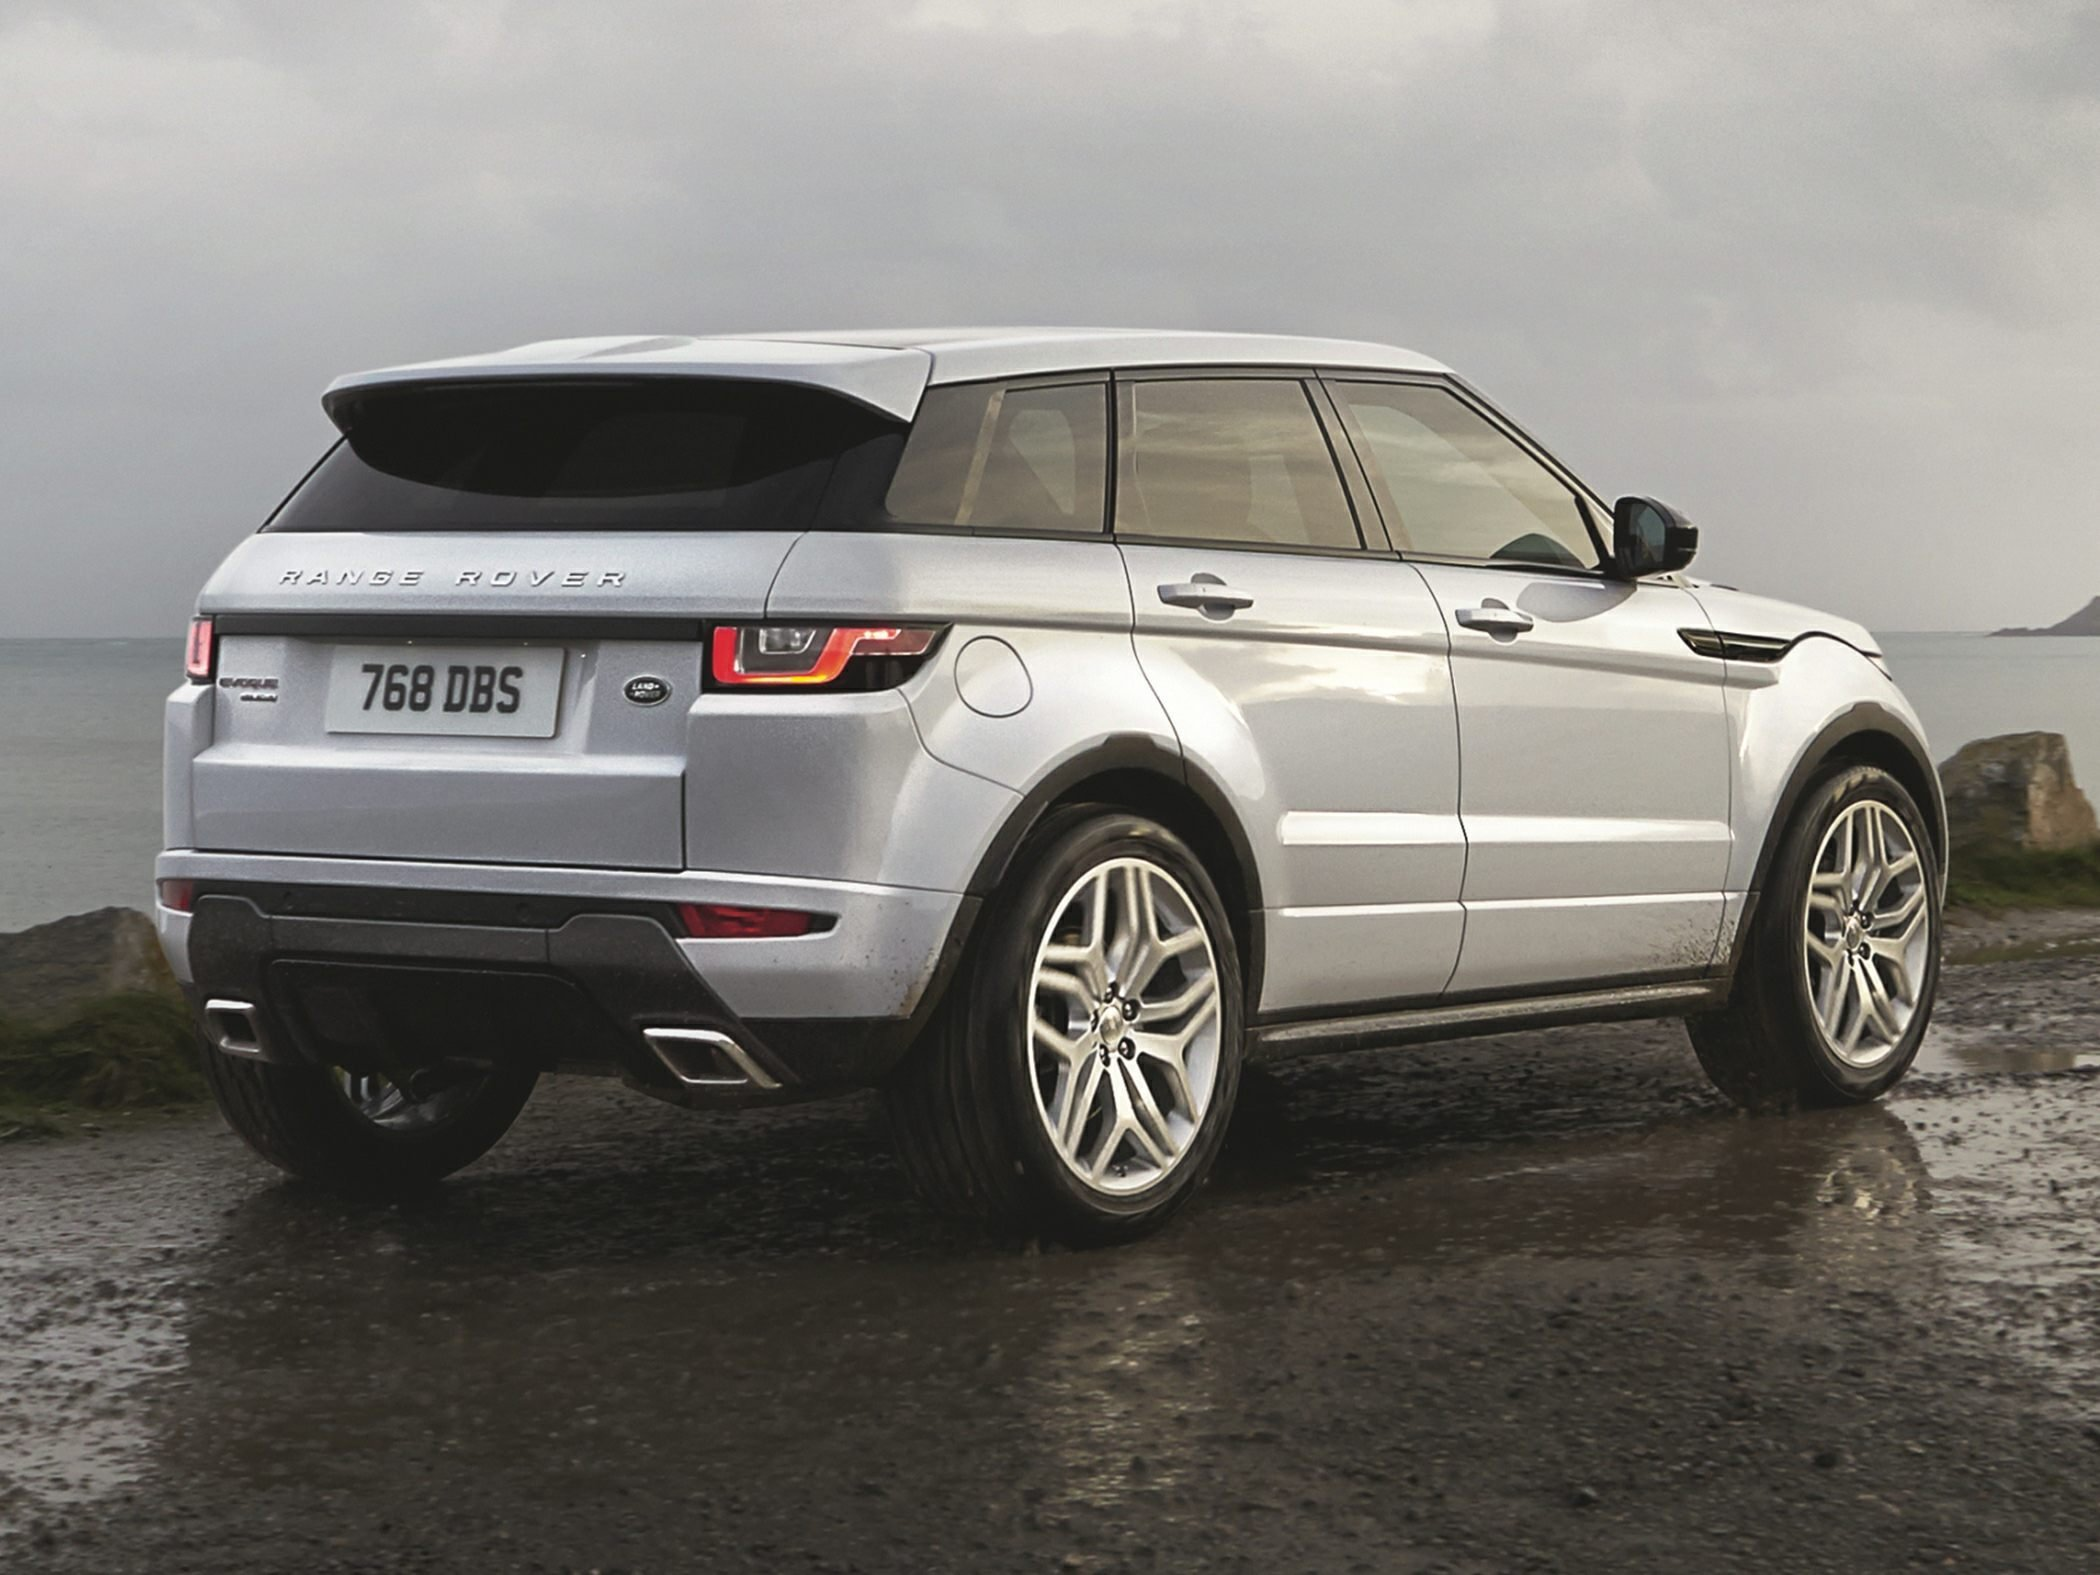 Latest New 2017 Land Rover Range Rover Evoque Price Photos Free Download